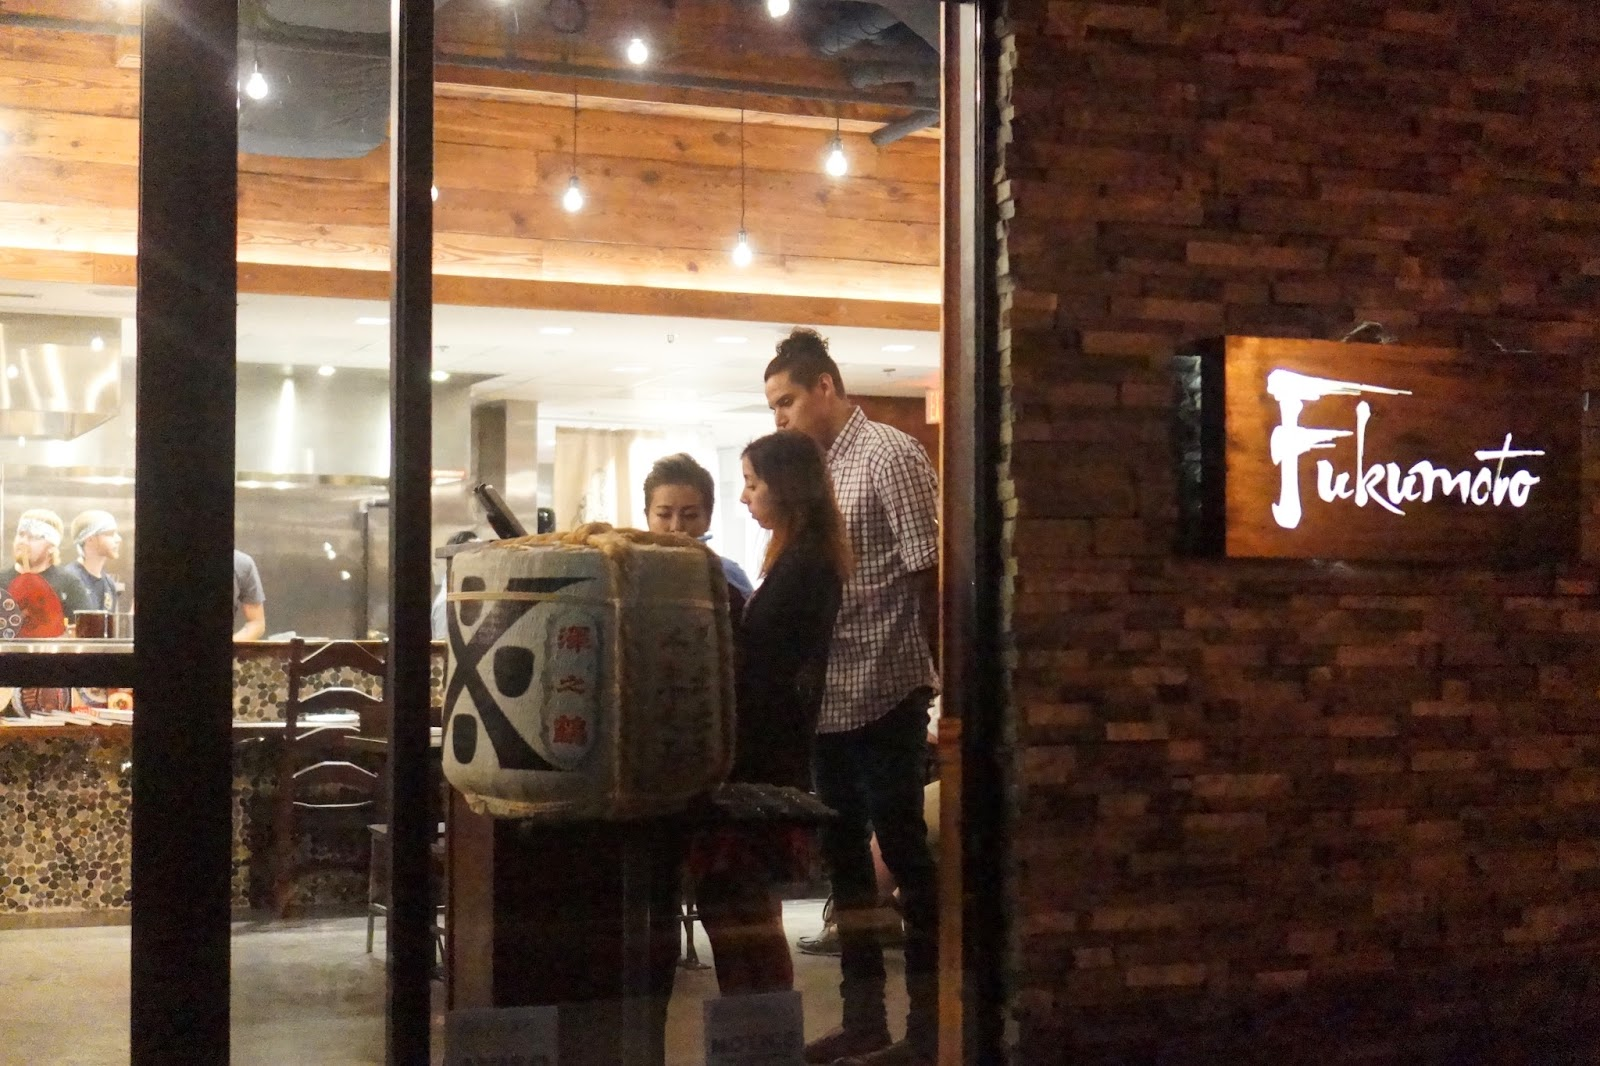 a first look at fukumoto izakaya & sushi | sushi in the atx